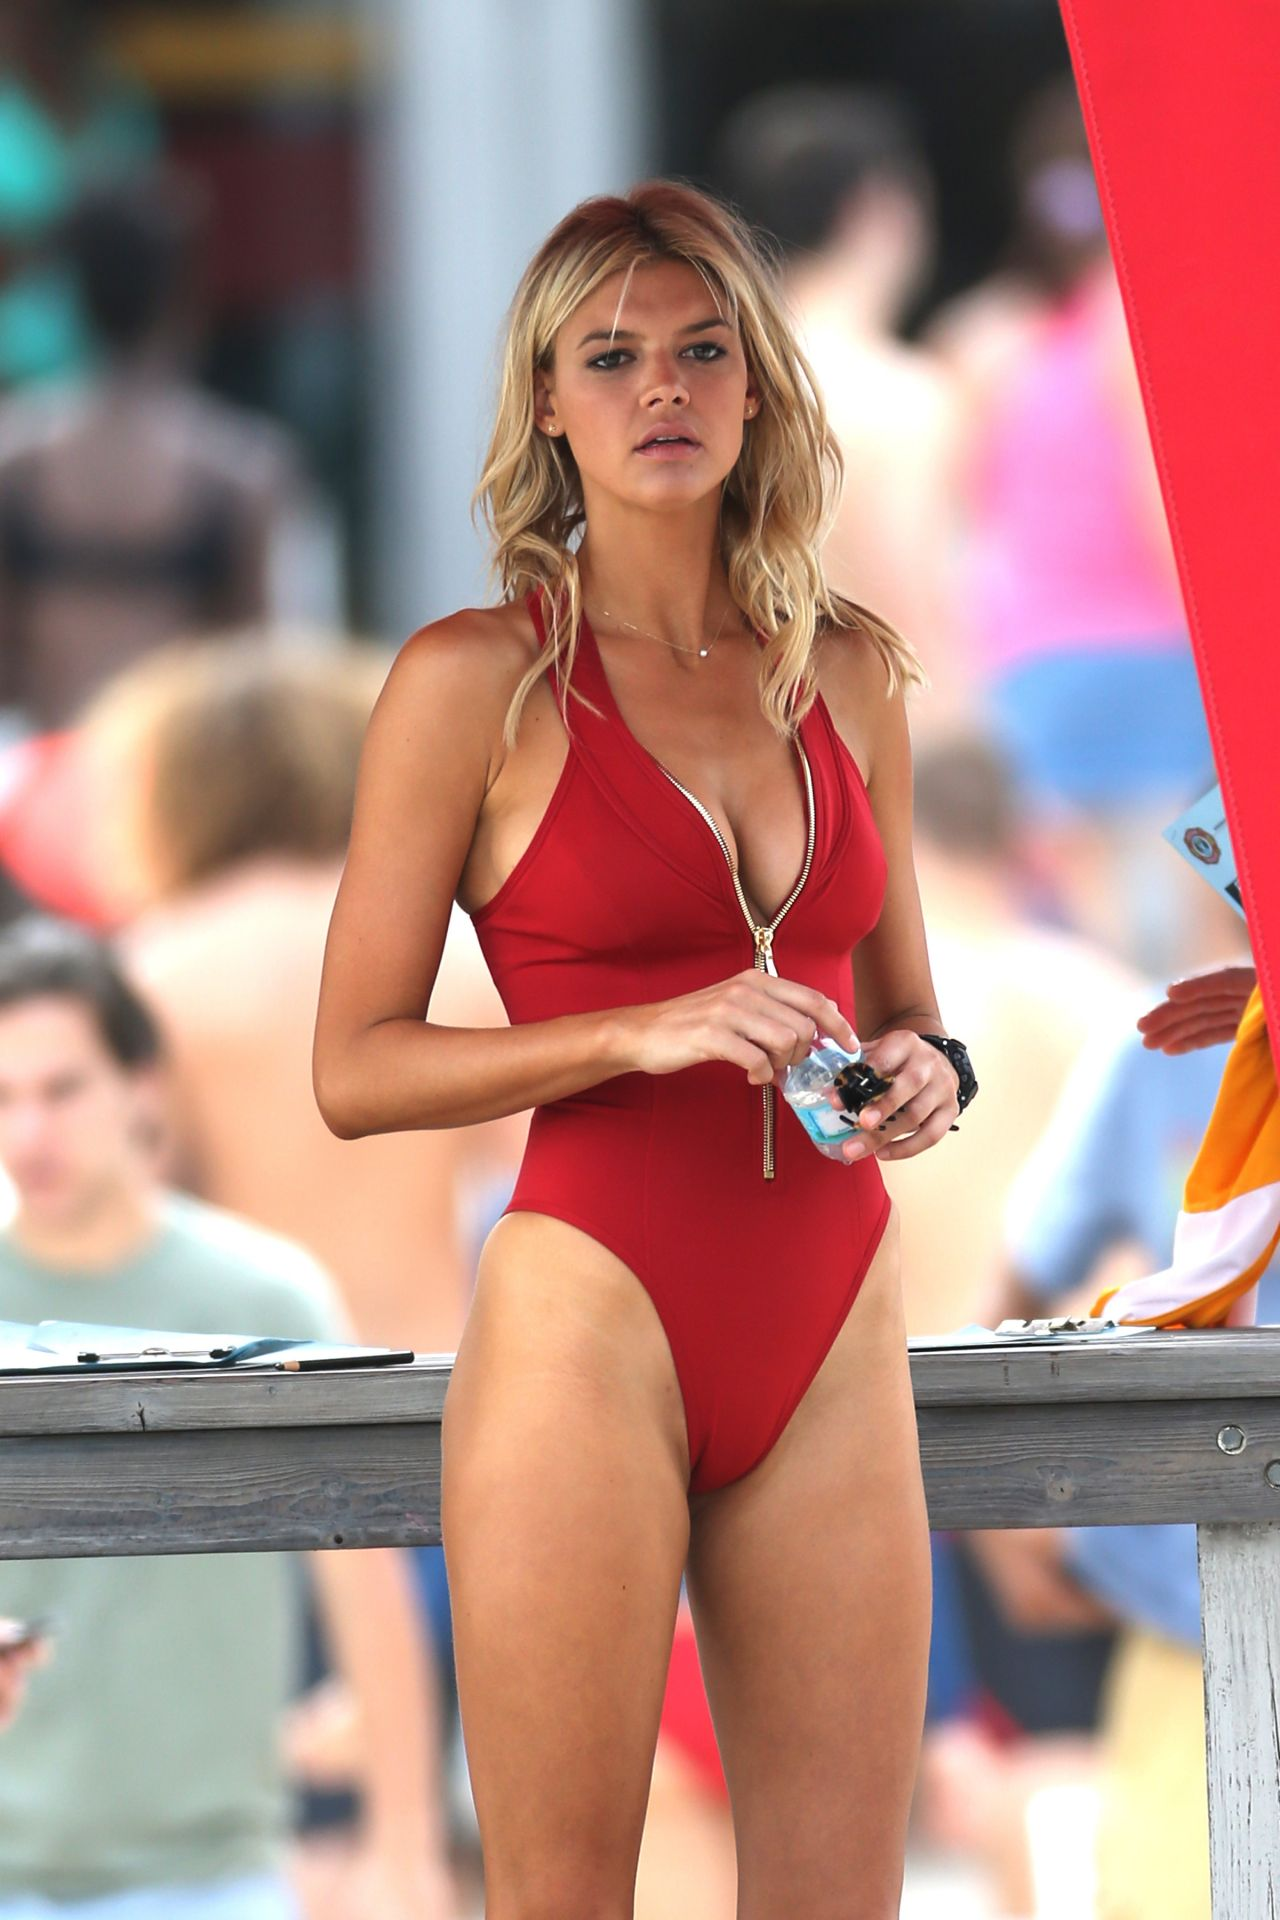 san andreas cj with Kelly Rohrbach Red Swimsuit Set Baywatch Miami March 2016 490743 on Lester 27s House moreover 165510 Derp besides Android Icin En Iyi 11 Oyun 501887 additionally Video Game Memes moreover Kelly Rohrbach Red Swimsuit Set Baywatch Miami March 2016 490743.